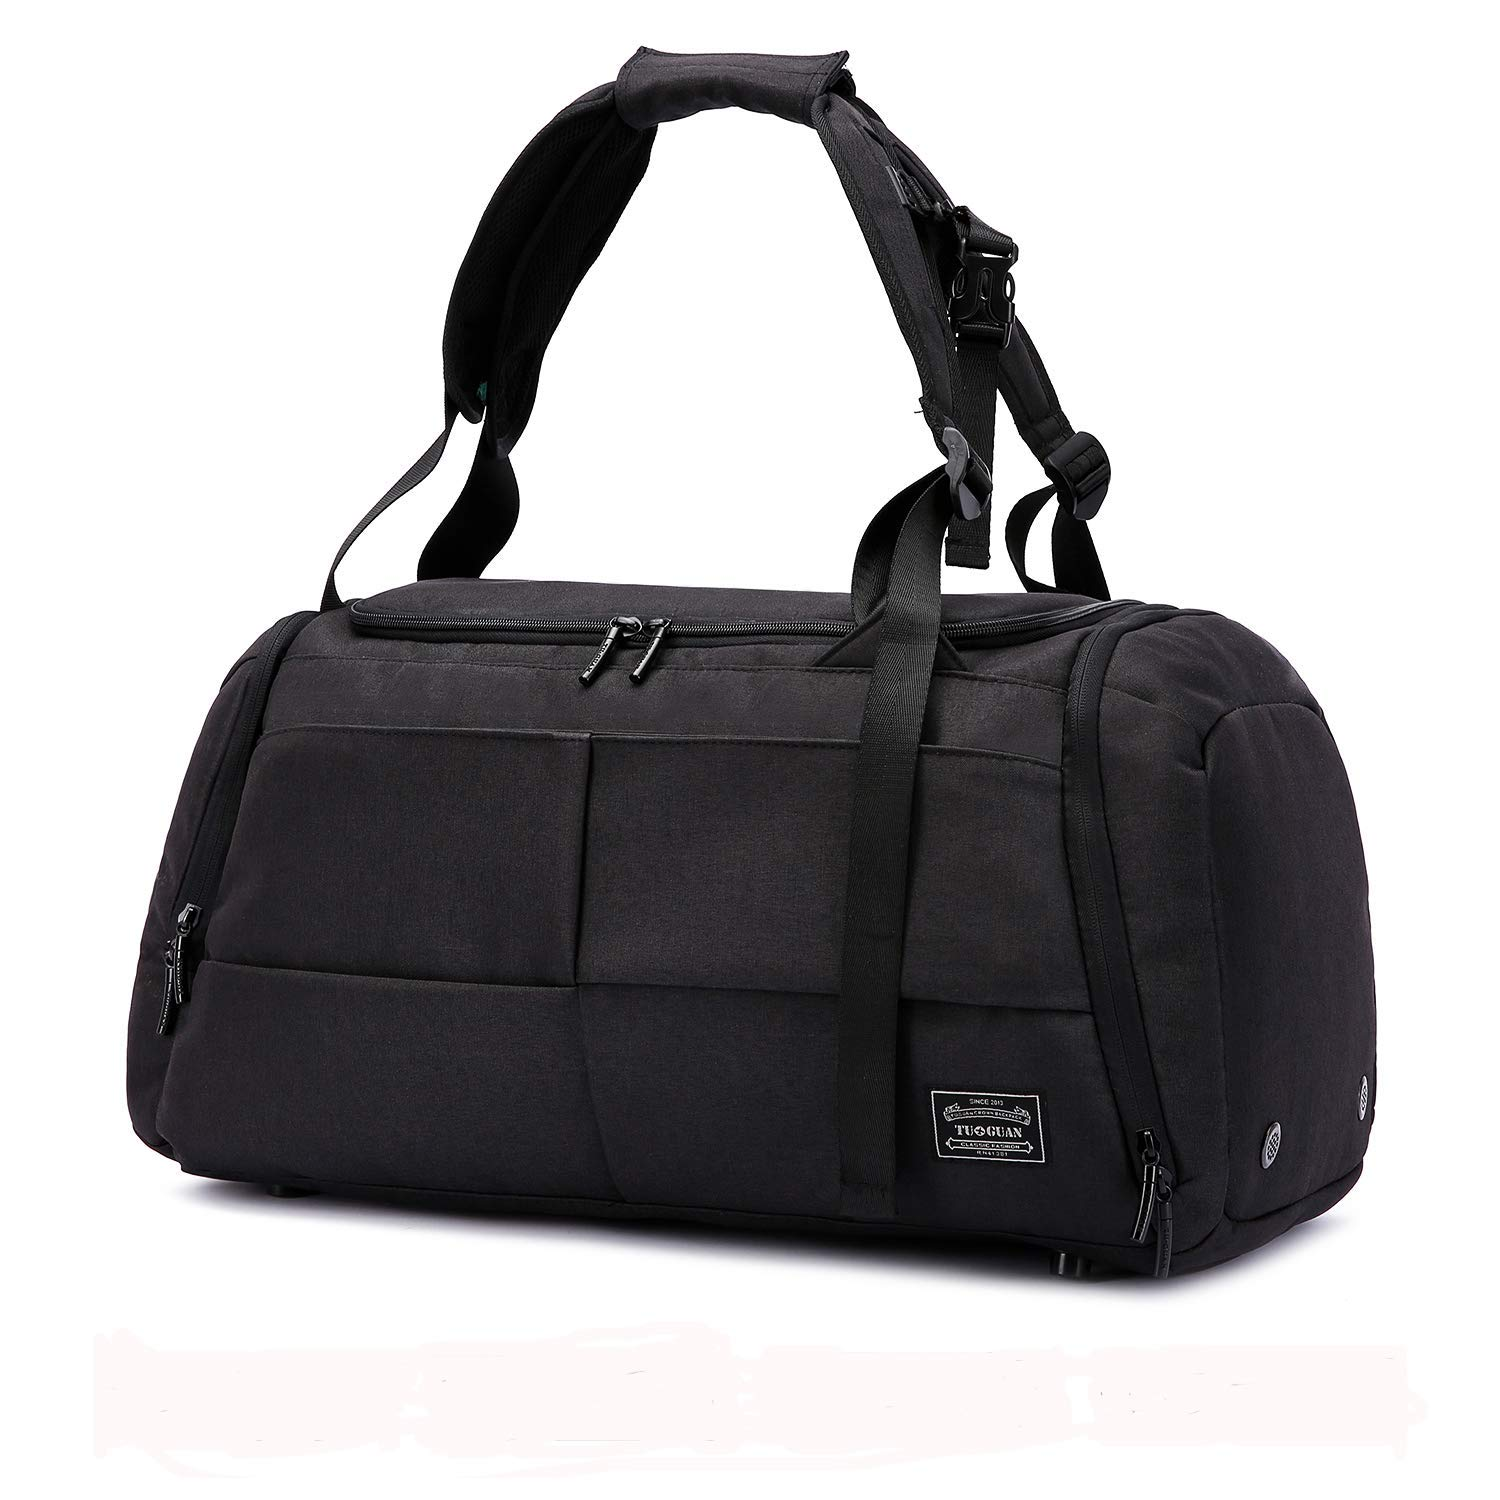 Sports Gym Bag 3 Way Duffel Backpack Overnight Weekender Tote with Shoes Pouch Carry on Bag for Workout, Travel, Camping